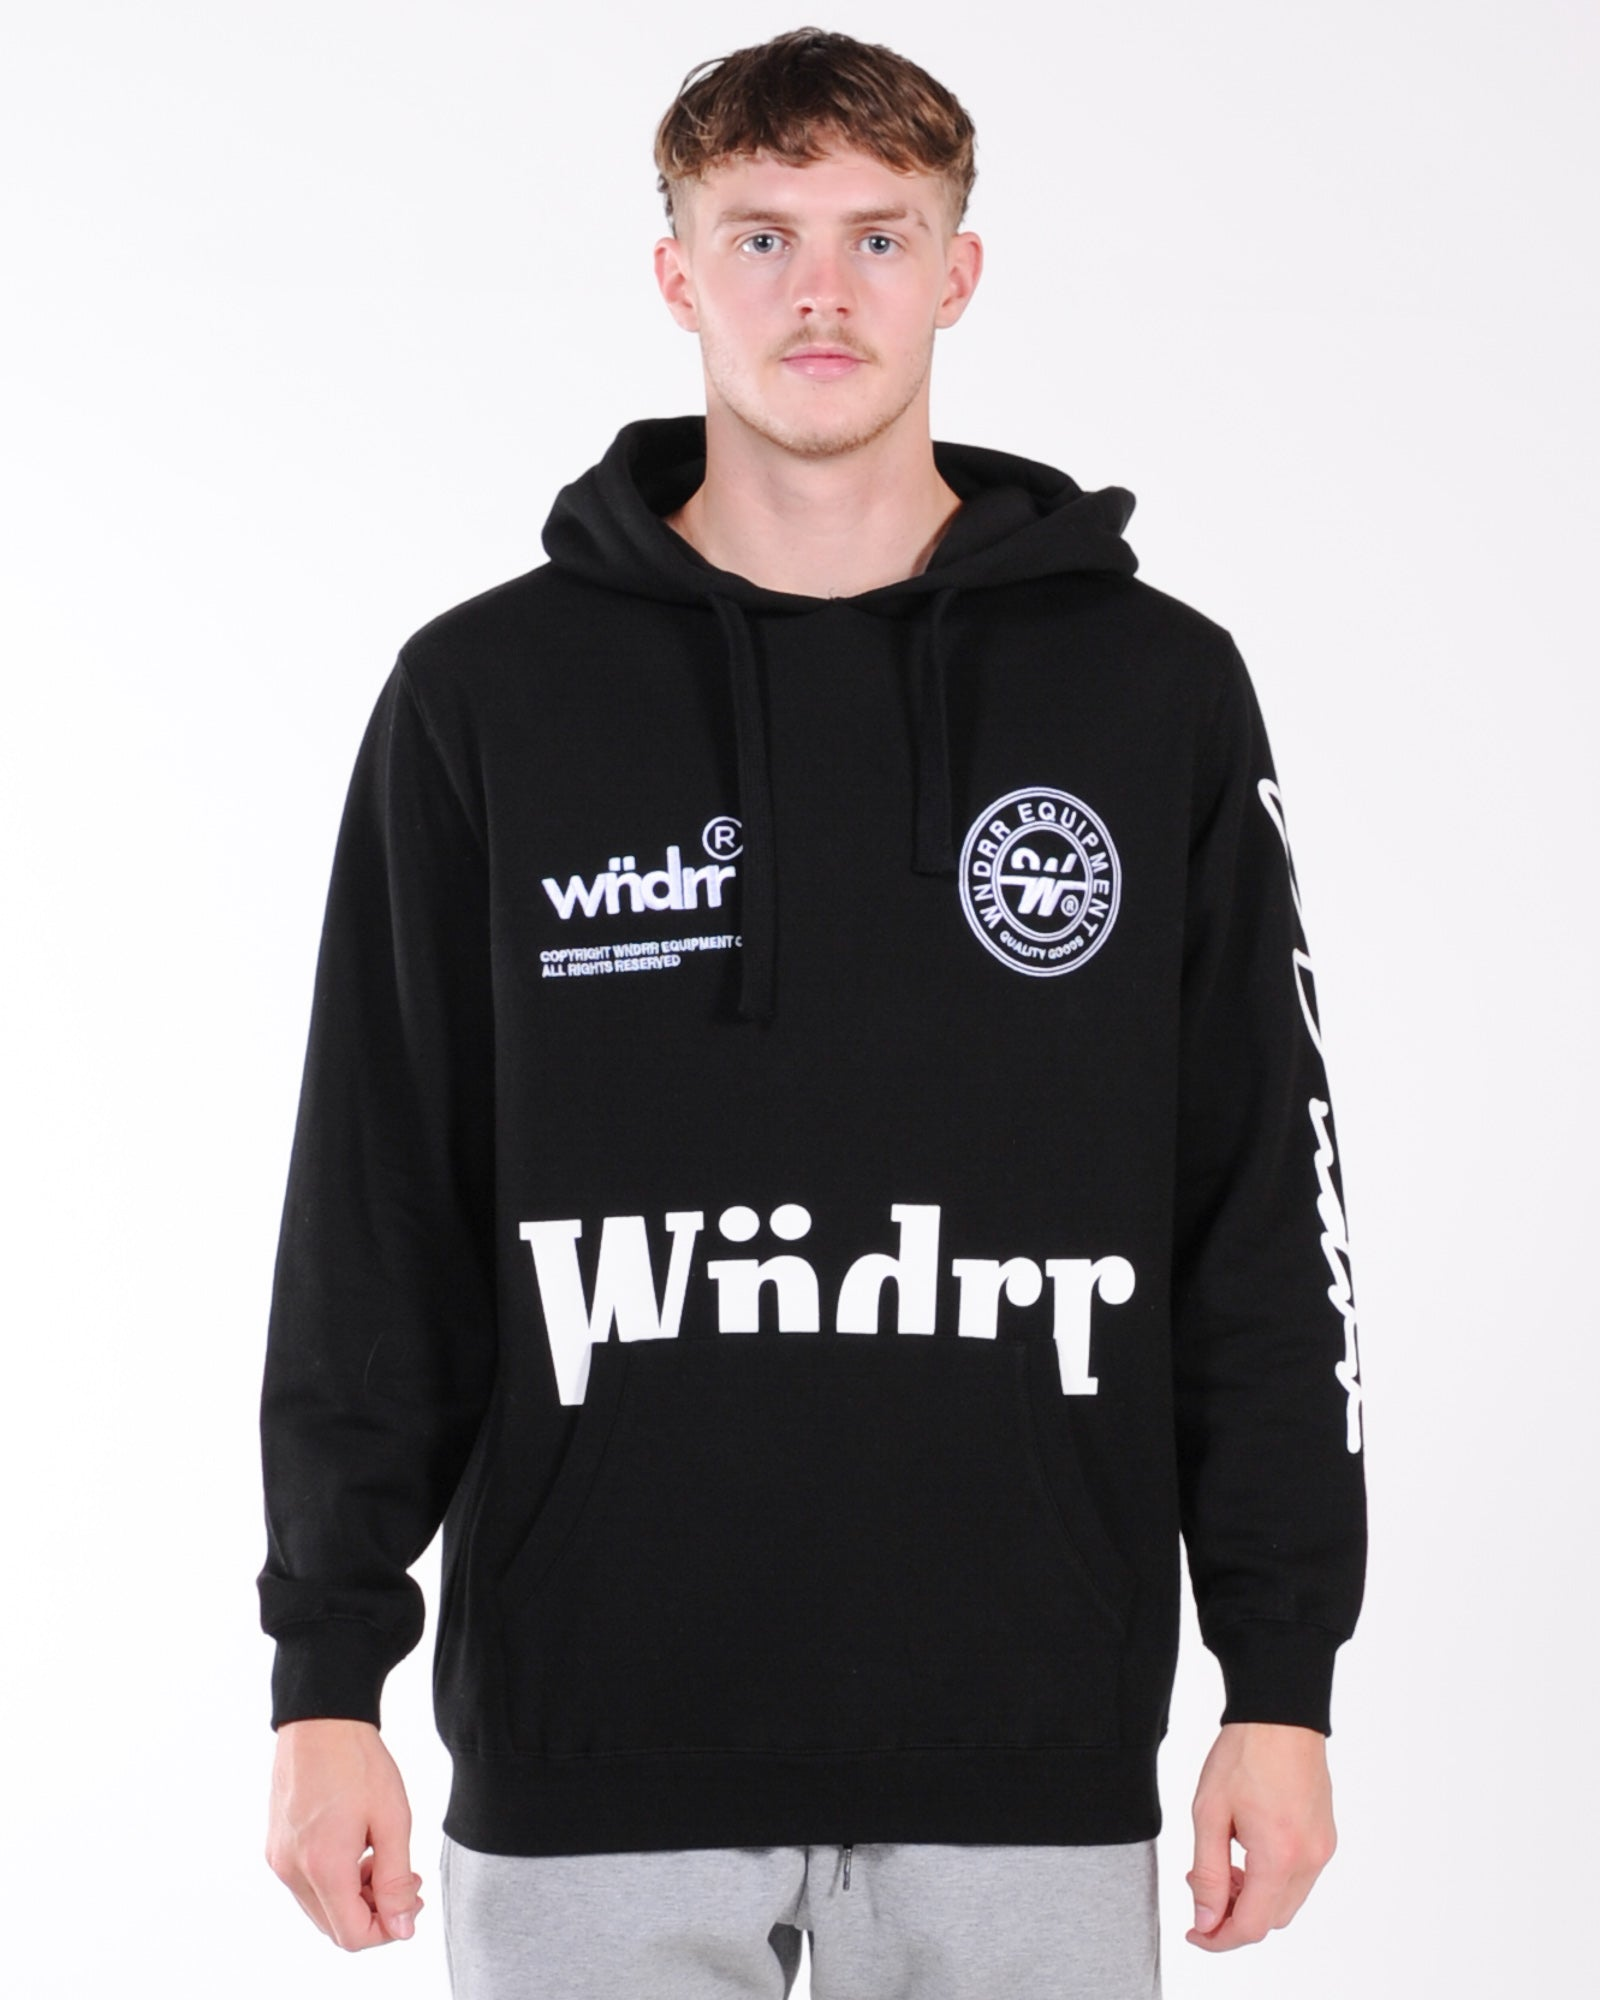 Wndrr Bounty Hood Sweat - Black